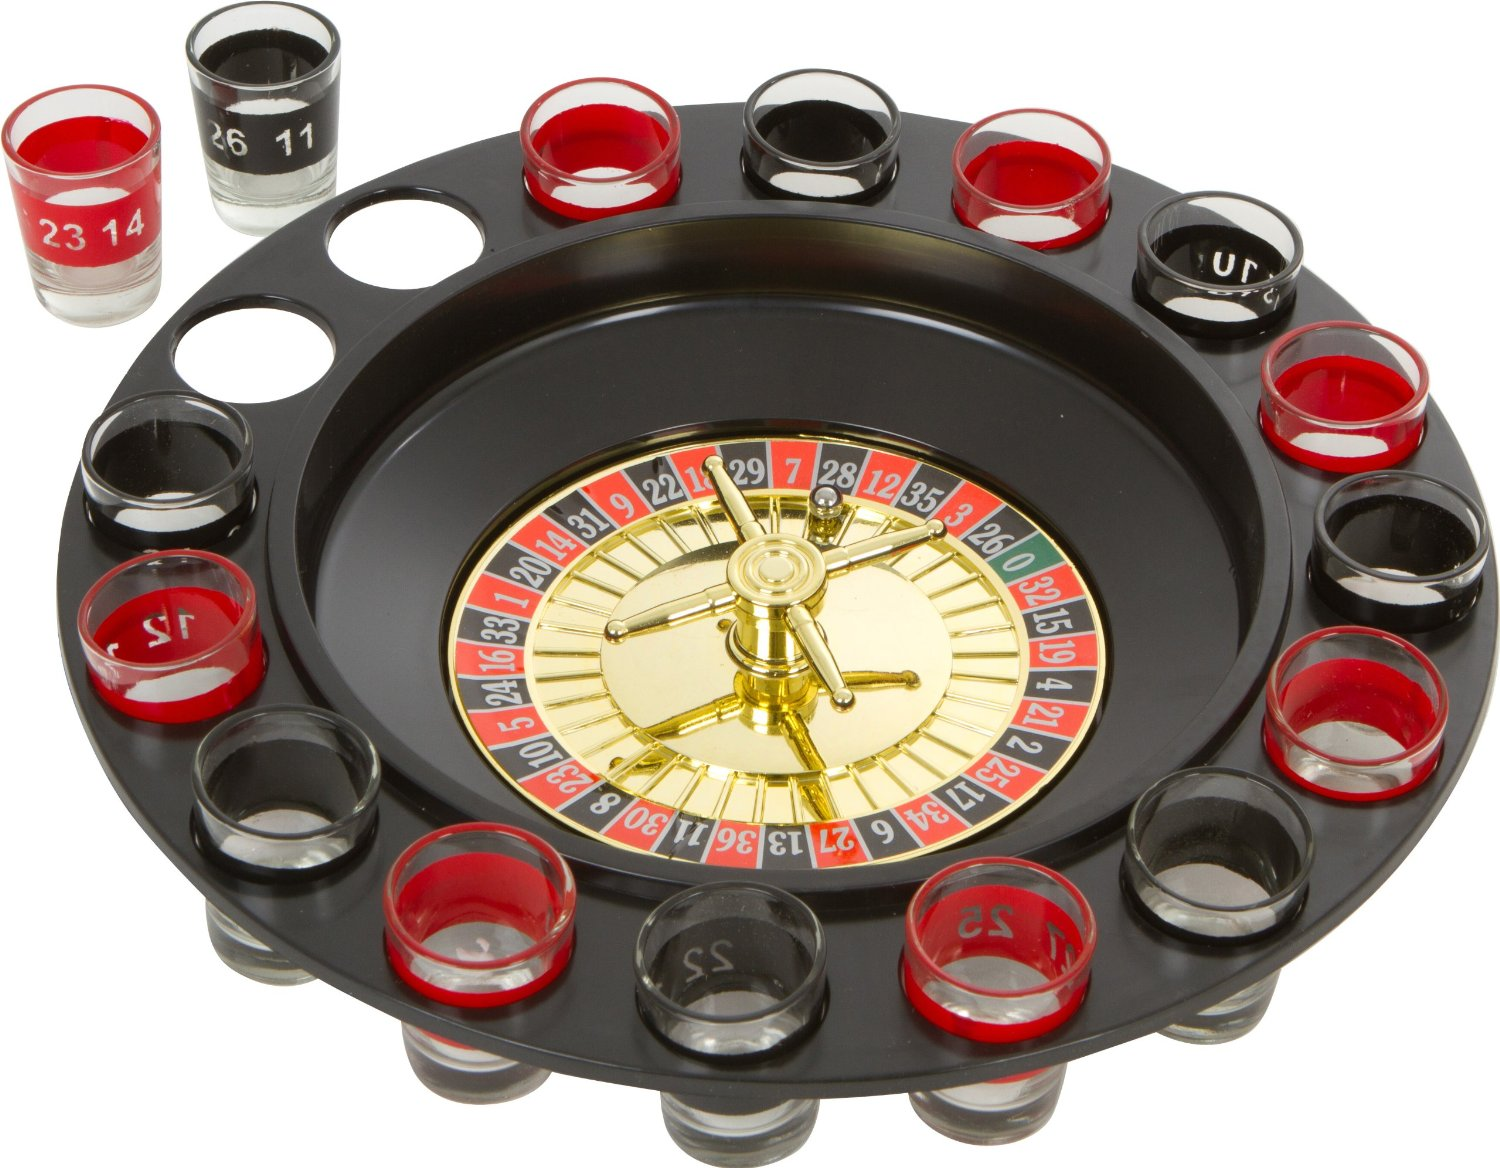 glass shot roulette adult drinking game life changing products. Black Bedroom Furniture Sets. Home Design Ideas